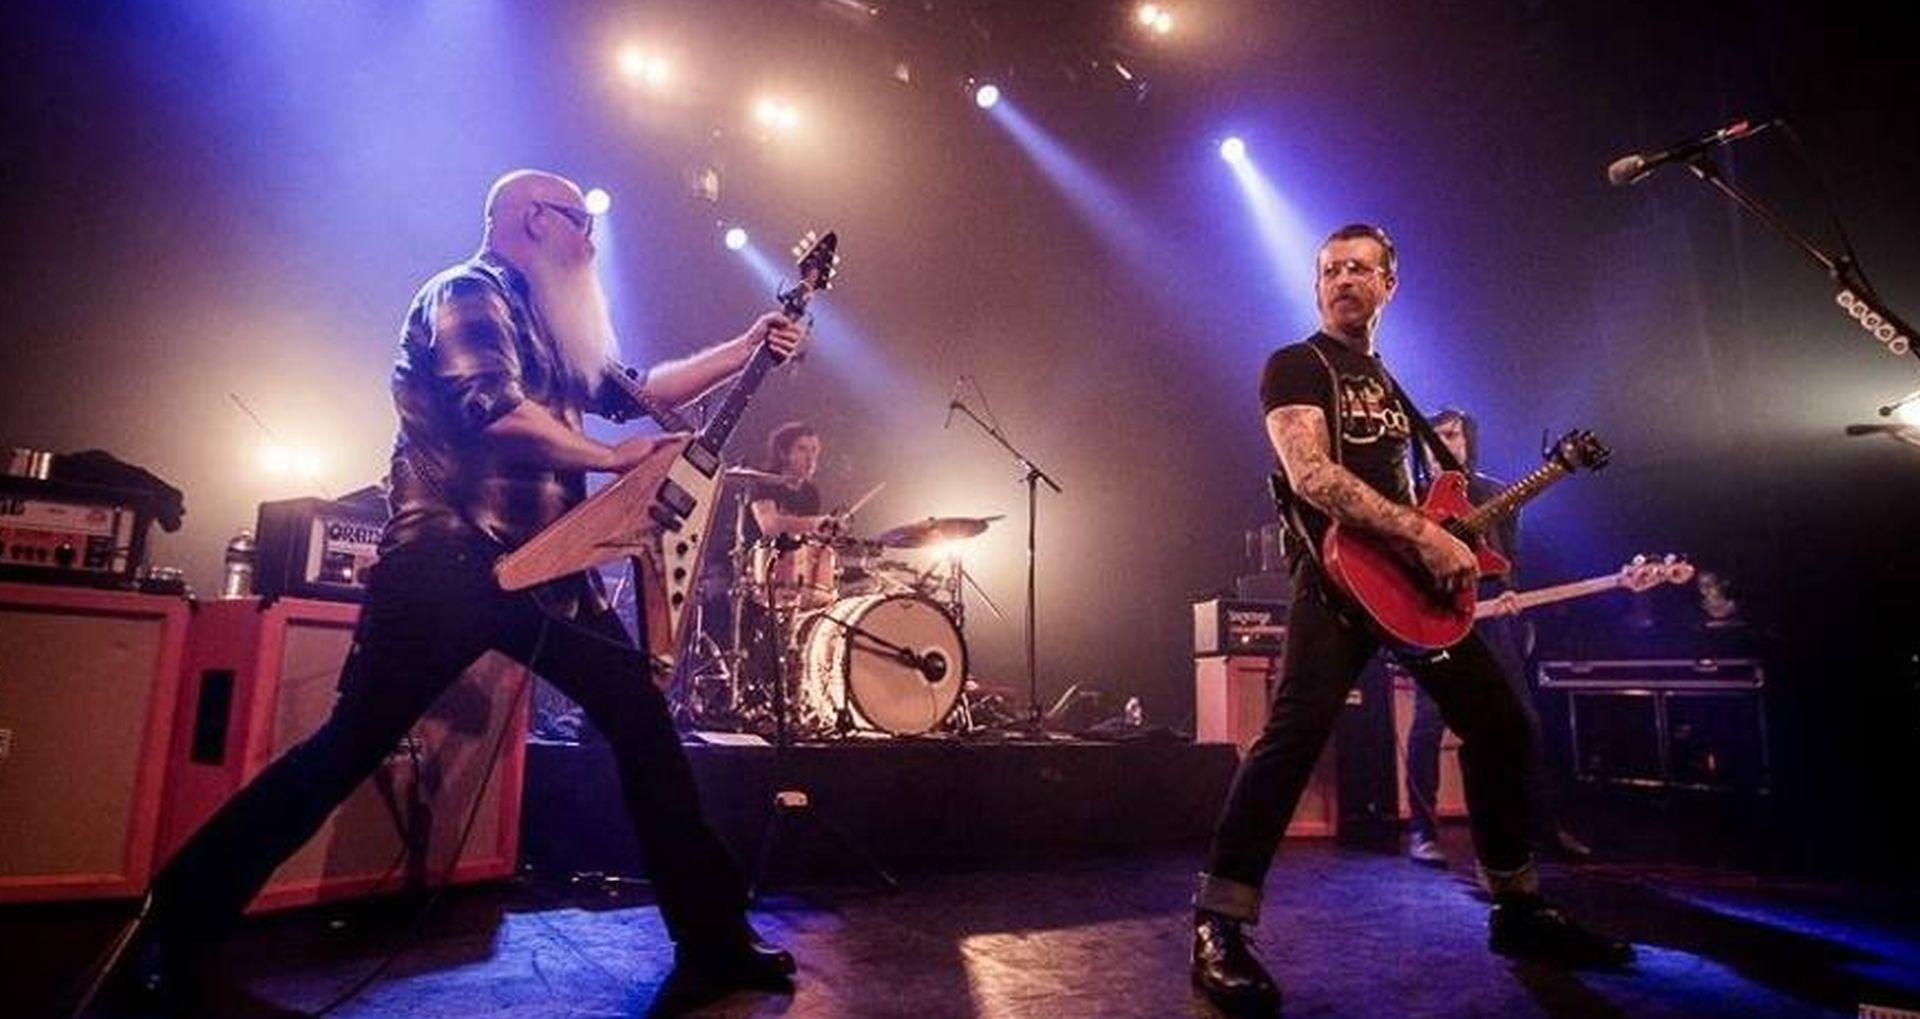 VIDEO: Eagles of Death Metal odradili prekinuti pariški koncert